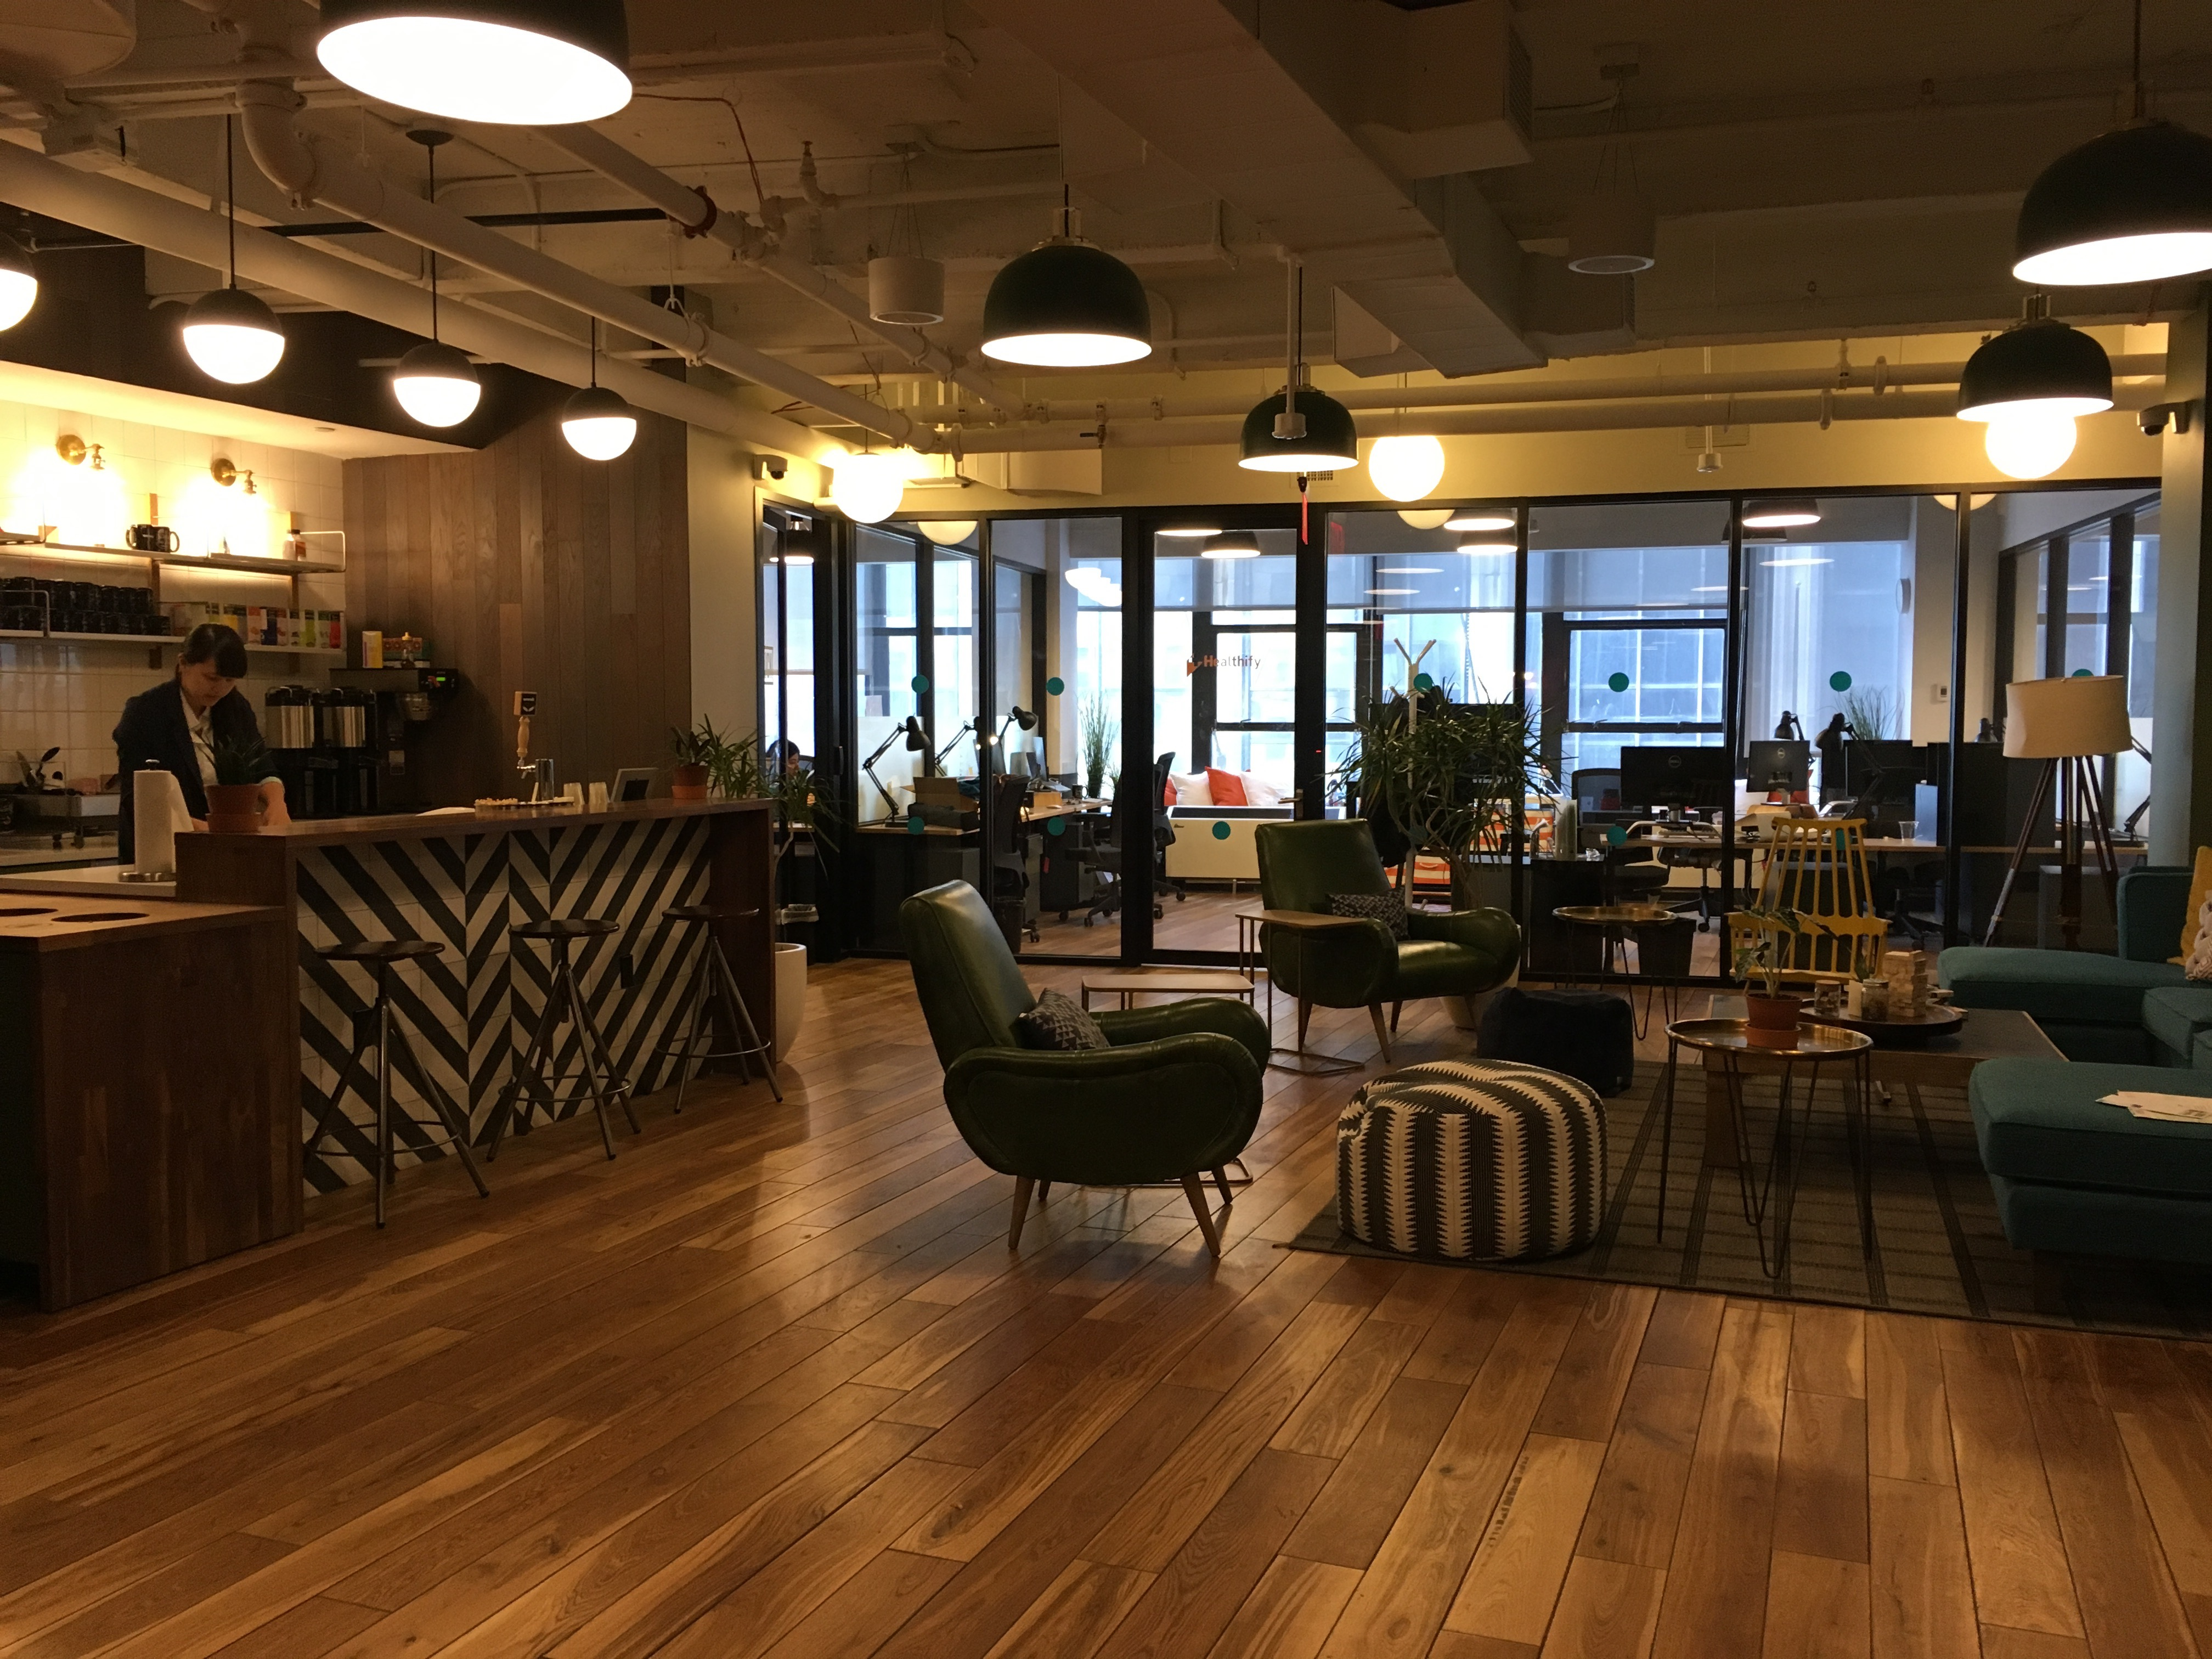 WeWork IPO may be Stalled, Hong Kong Stock Exchange Makes a Bid for London Stock Exchange, Apple Announces new iPhones, Apple Arcade and More